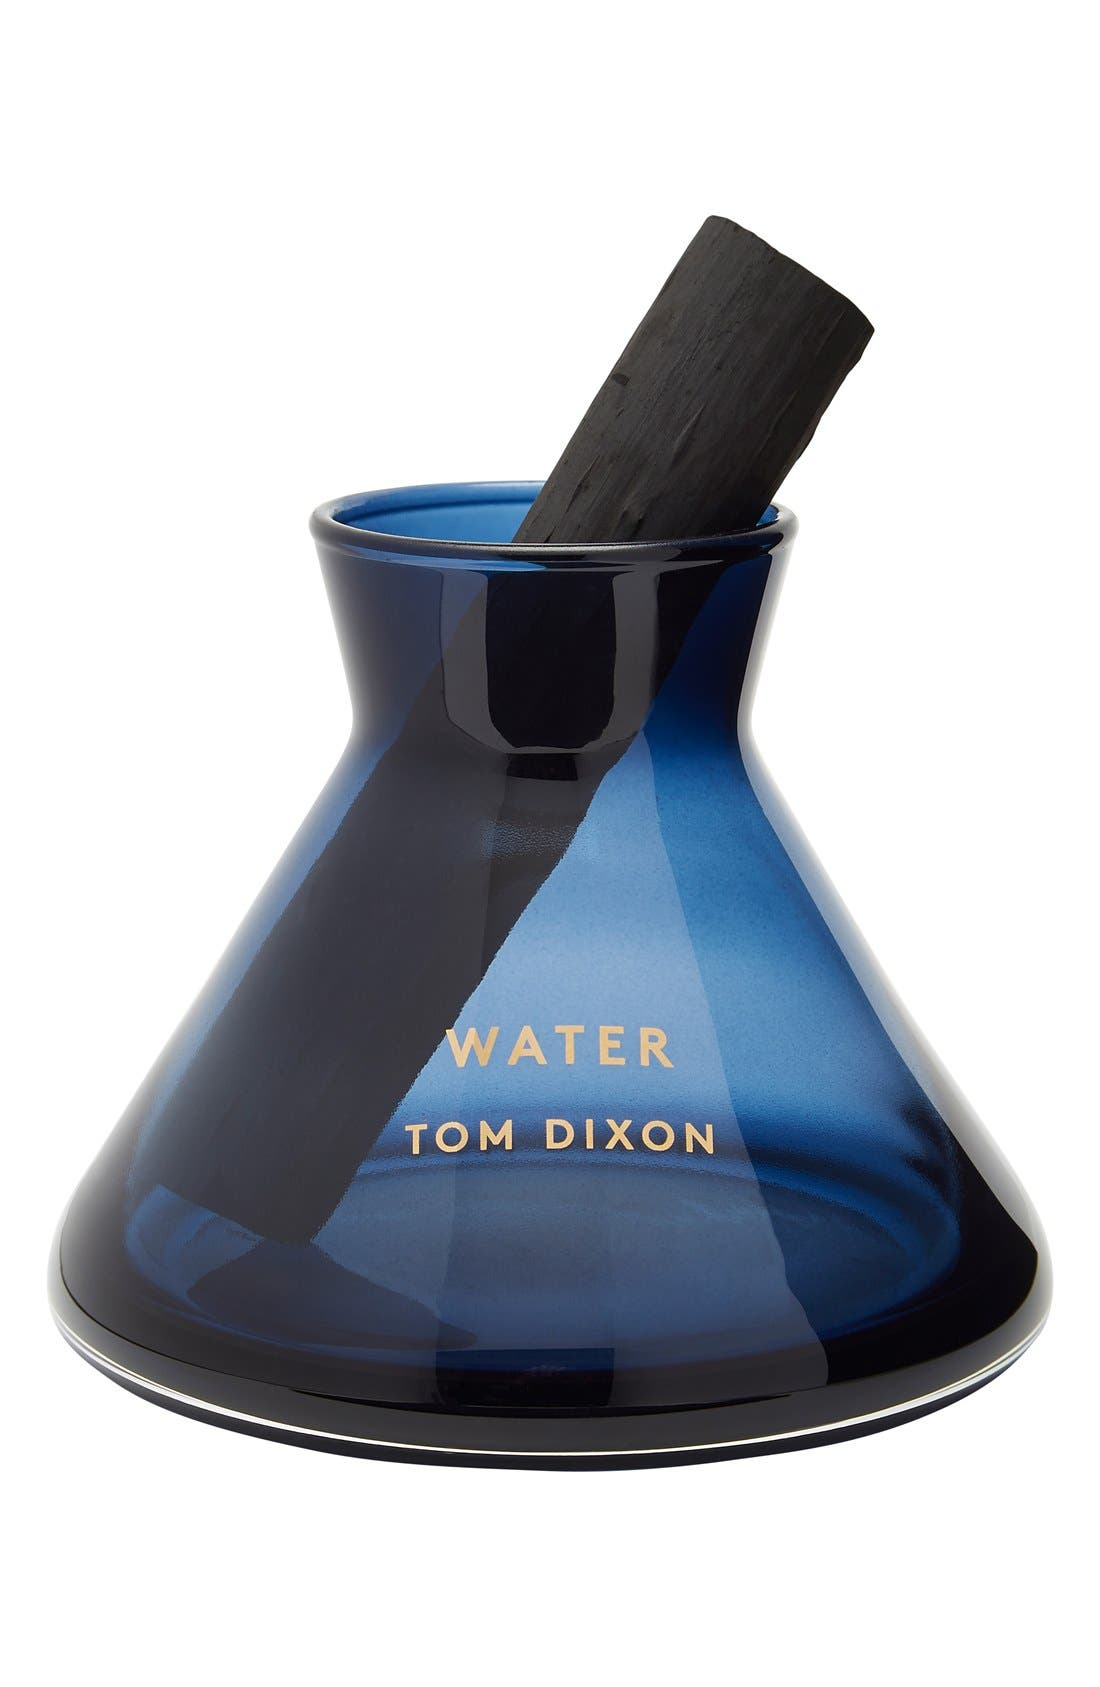 Alternate Image 1 Selected - Tom Dixon 'Water' Charcoal Stick Diffuser